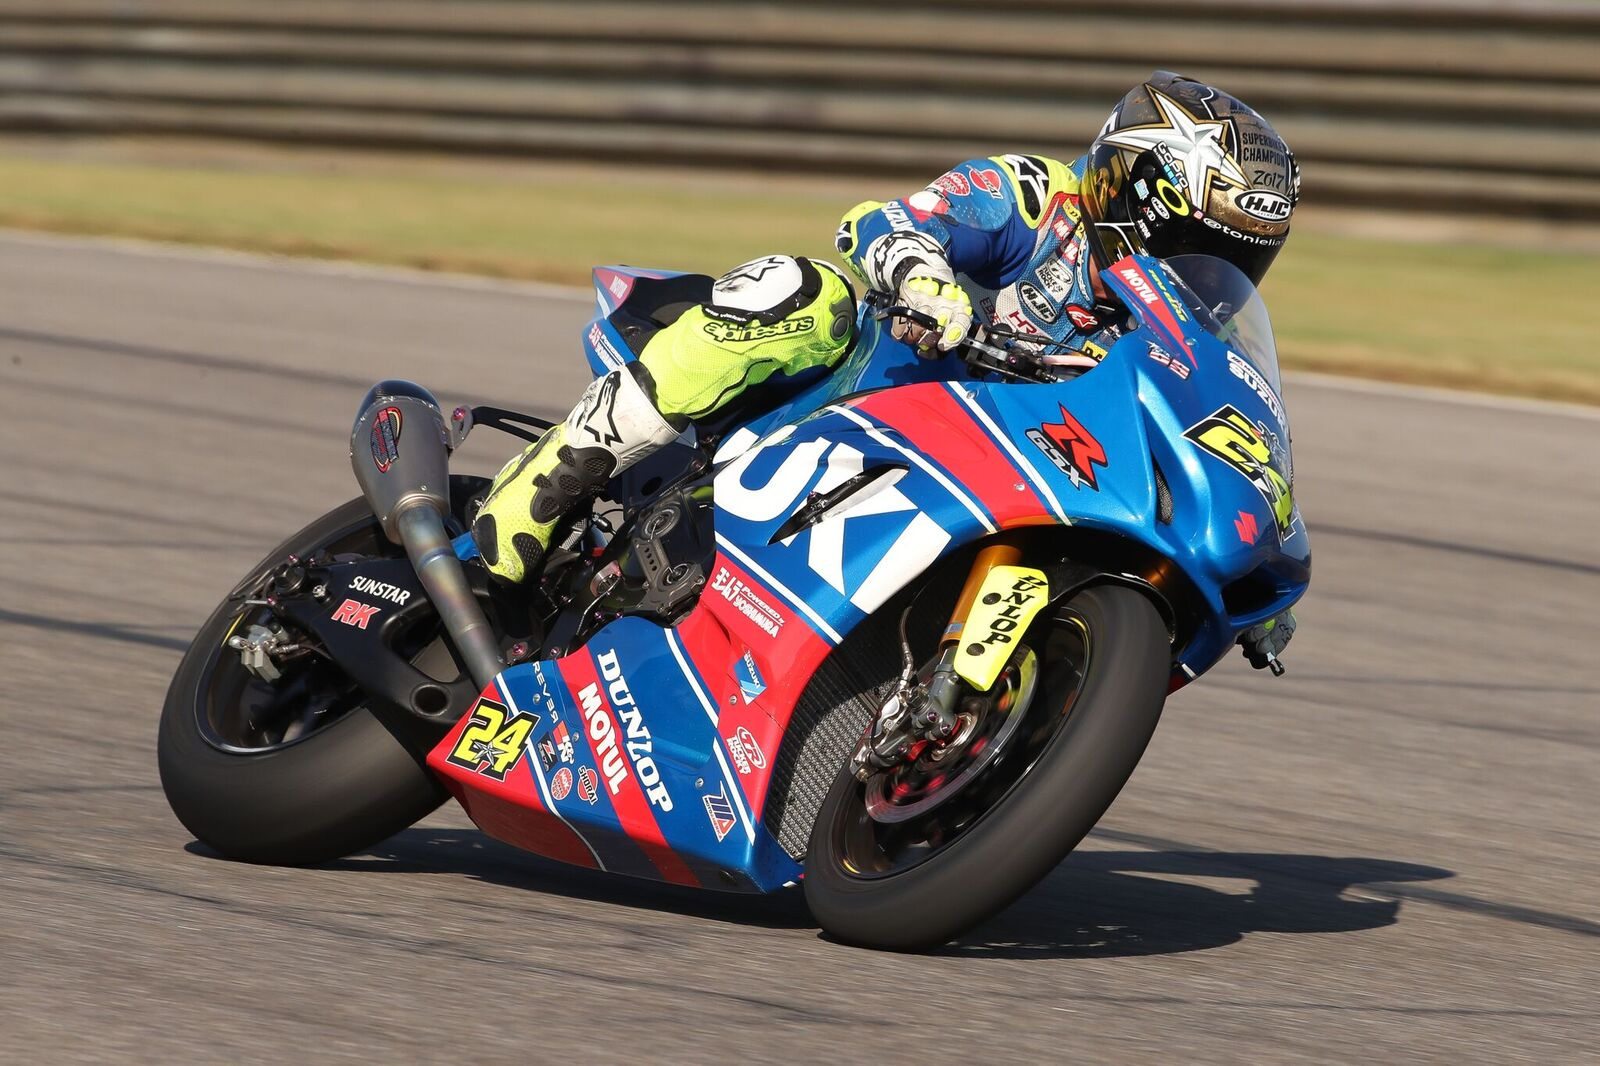 MotoAmerica Superbike Champion Toni Elias finished 2017 witha series-leading 10 victories aboard his Yoshimura Suzuki GSX-R1000. He is already tied with Wayne Rainey for eighth on the all-time MotoAmerica/AMA Superbike wins list. (Photo by Brian J. Nelson)